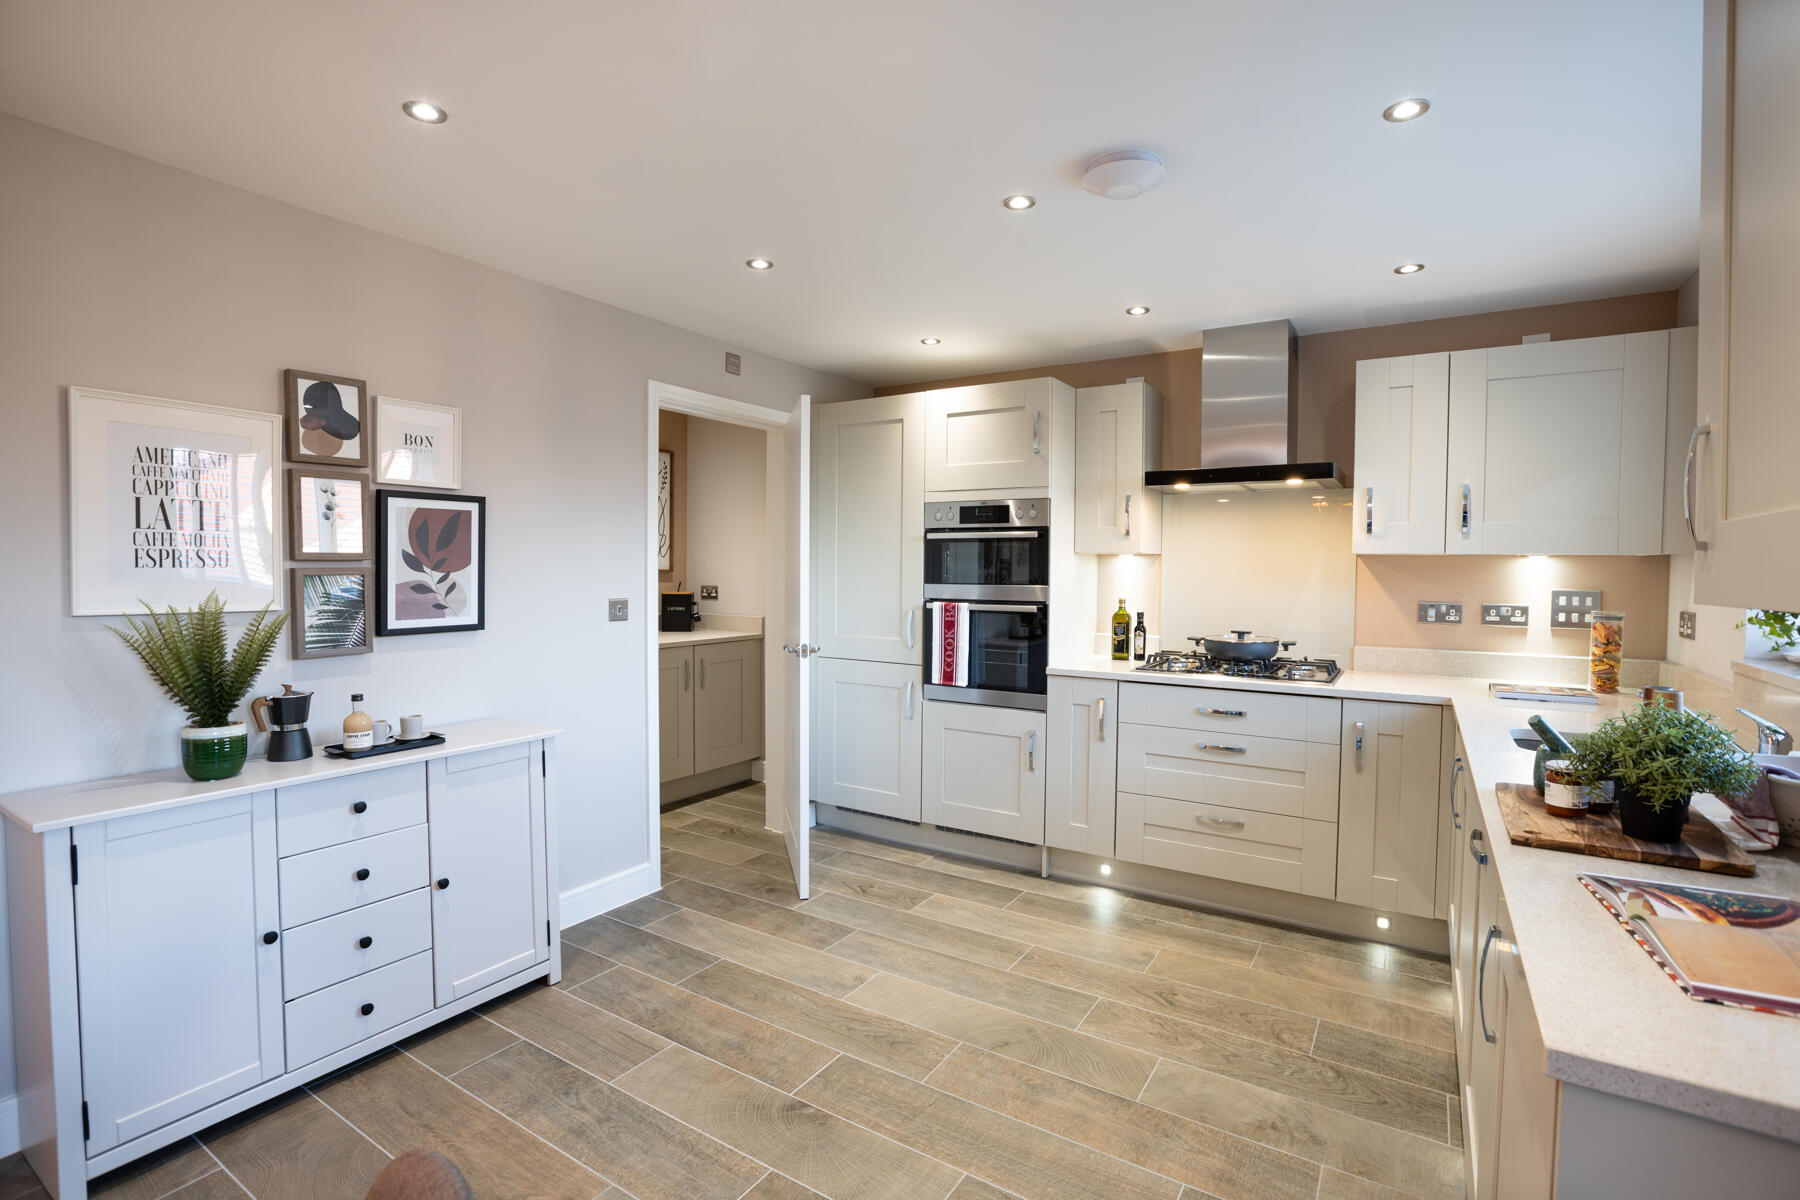 TW EX_Mountbatten Mews_PA44_Midford_Kitchen 2_1800x1200